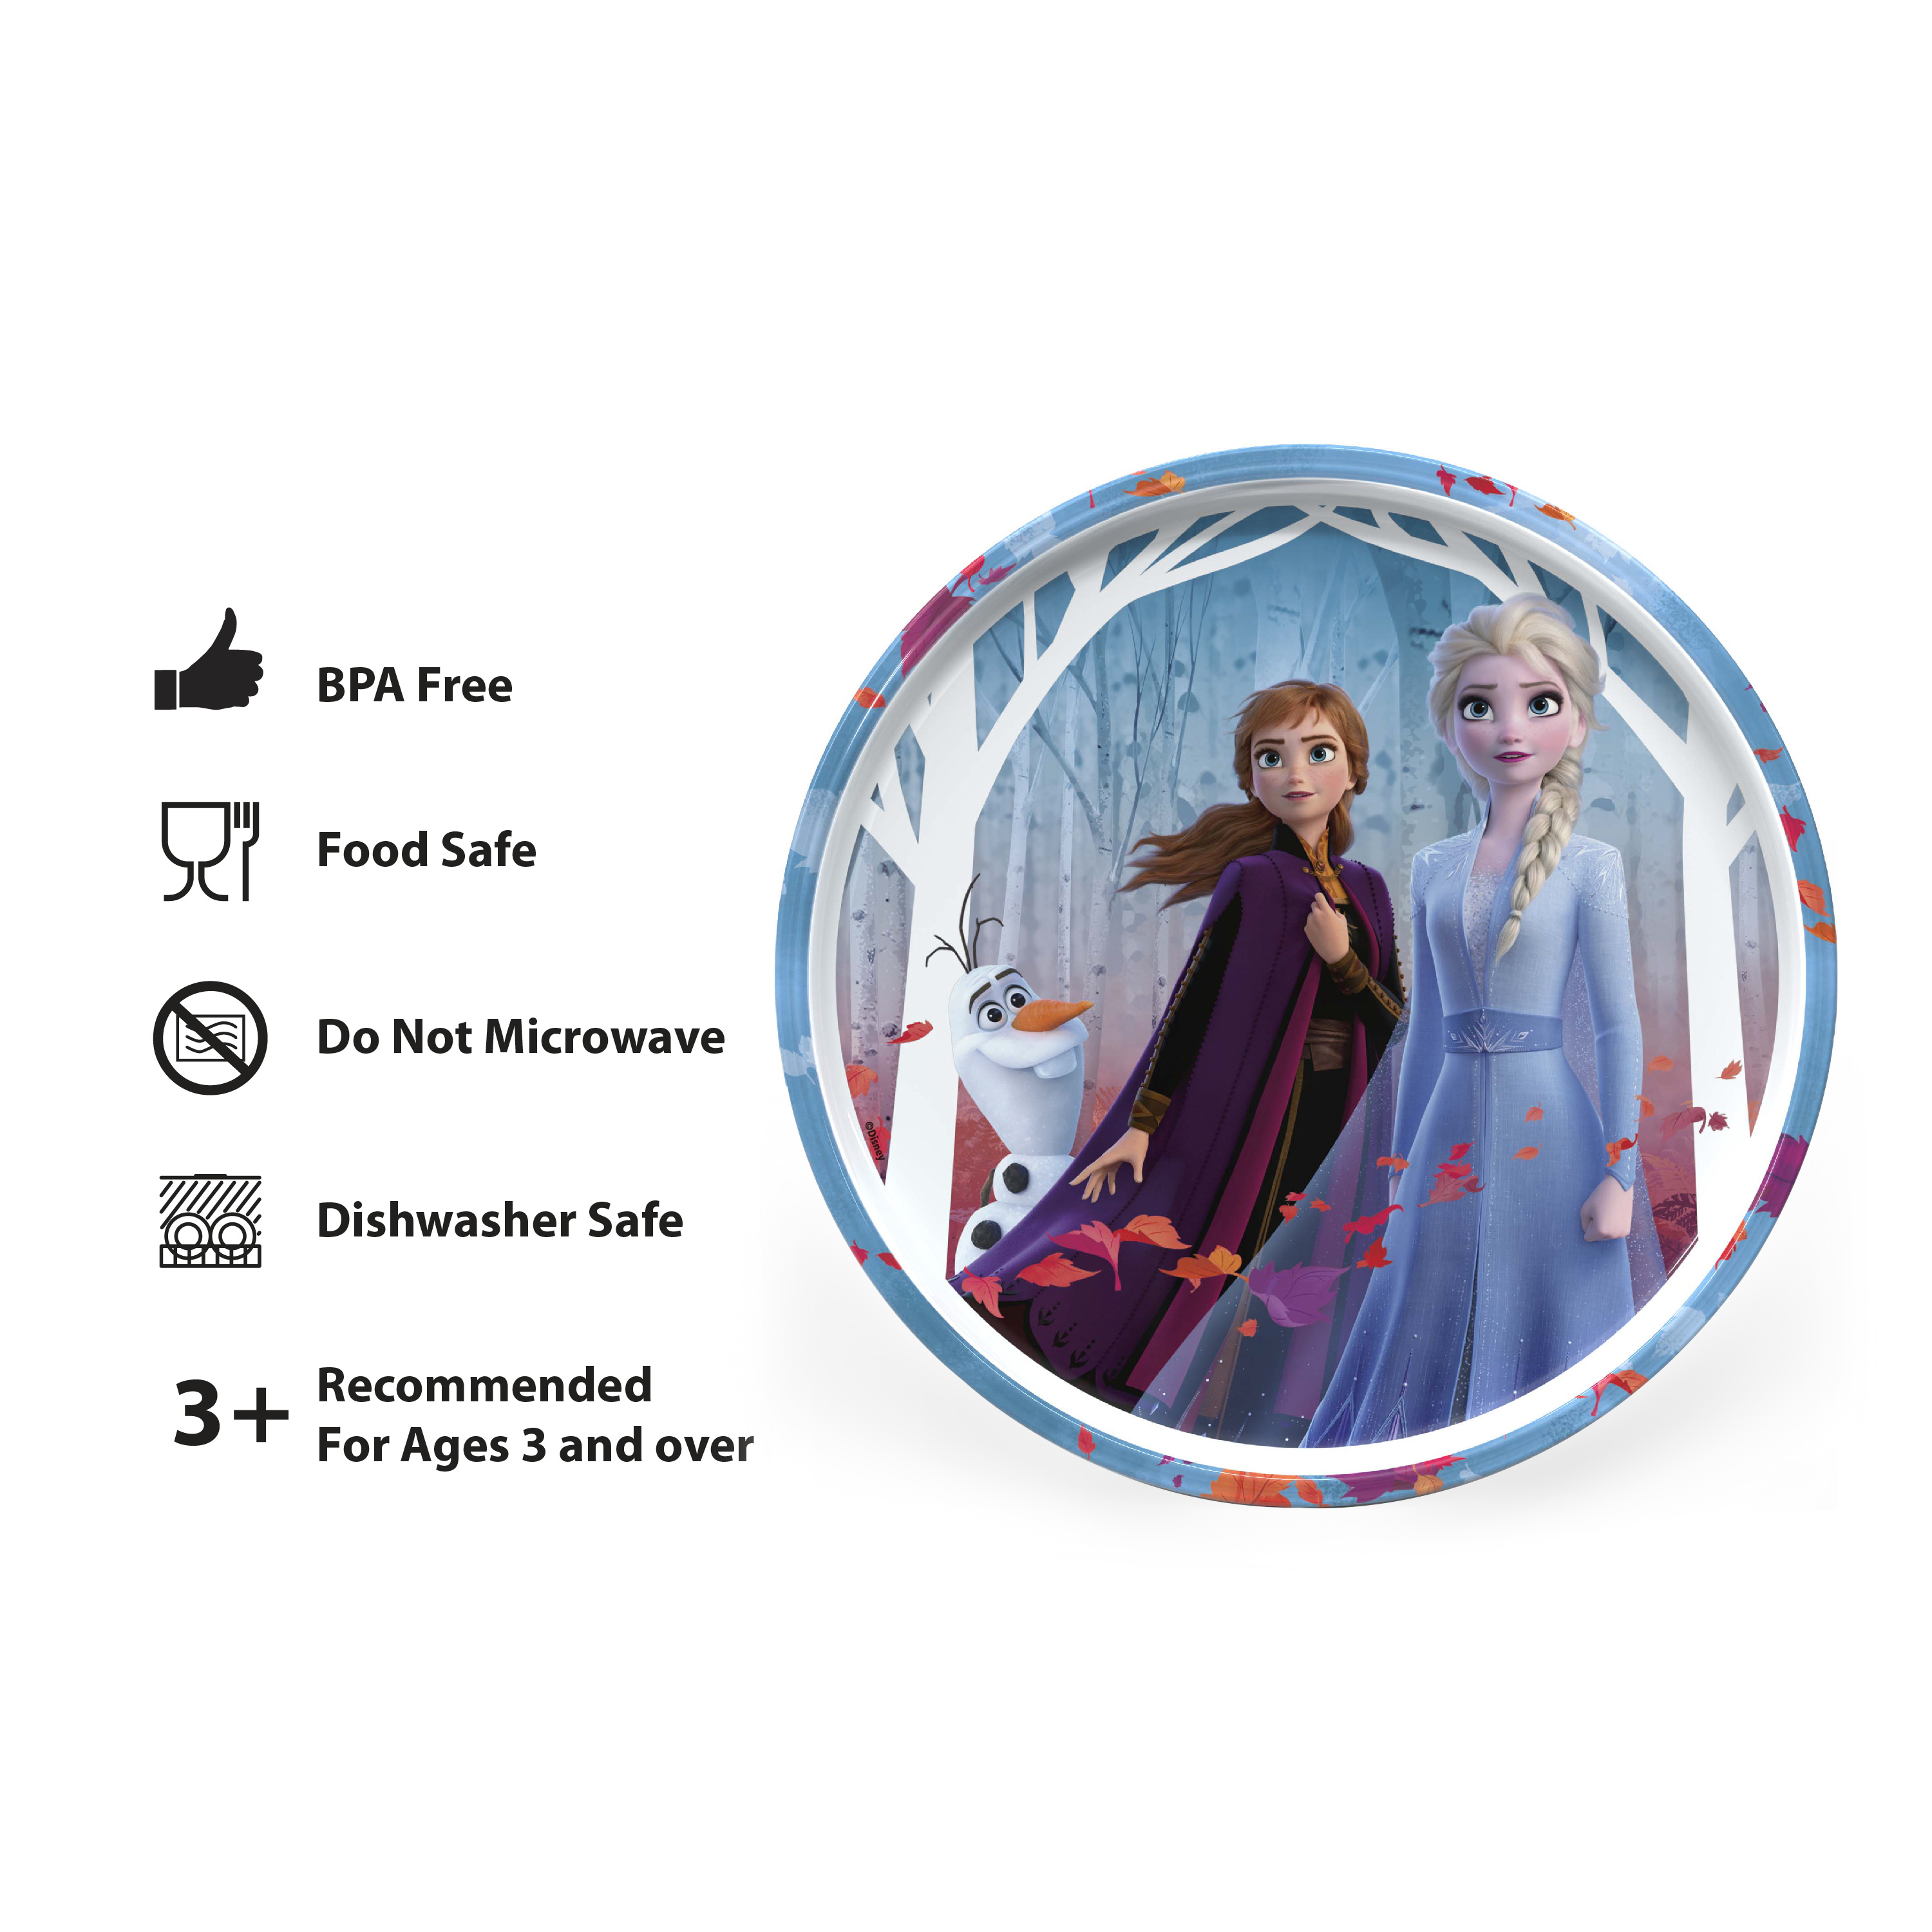 Disney Frozen 2 Movie Dinnerware Set, Anna and Elsa, 5-piece set slideshow image 3